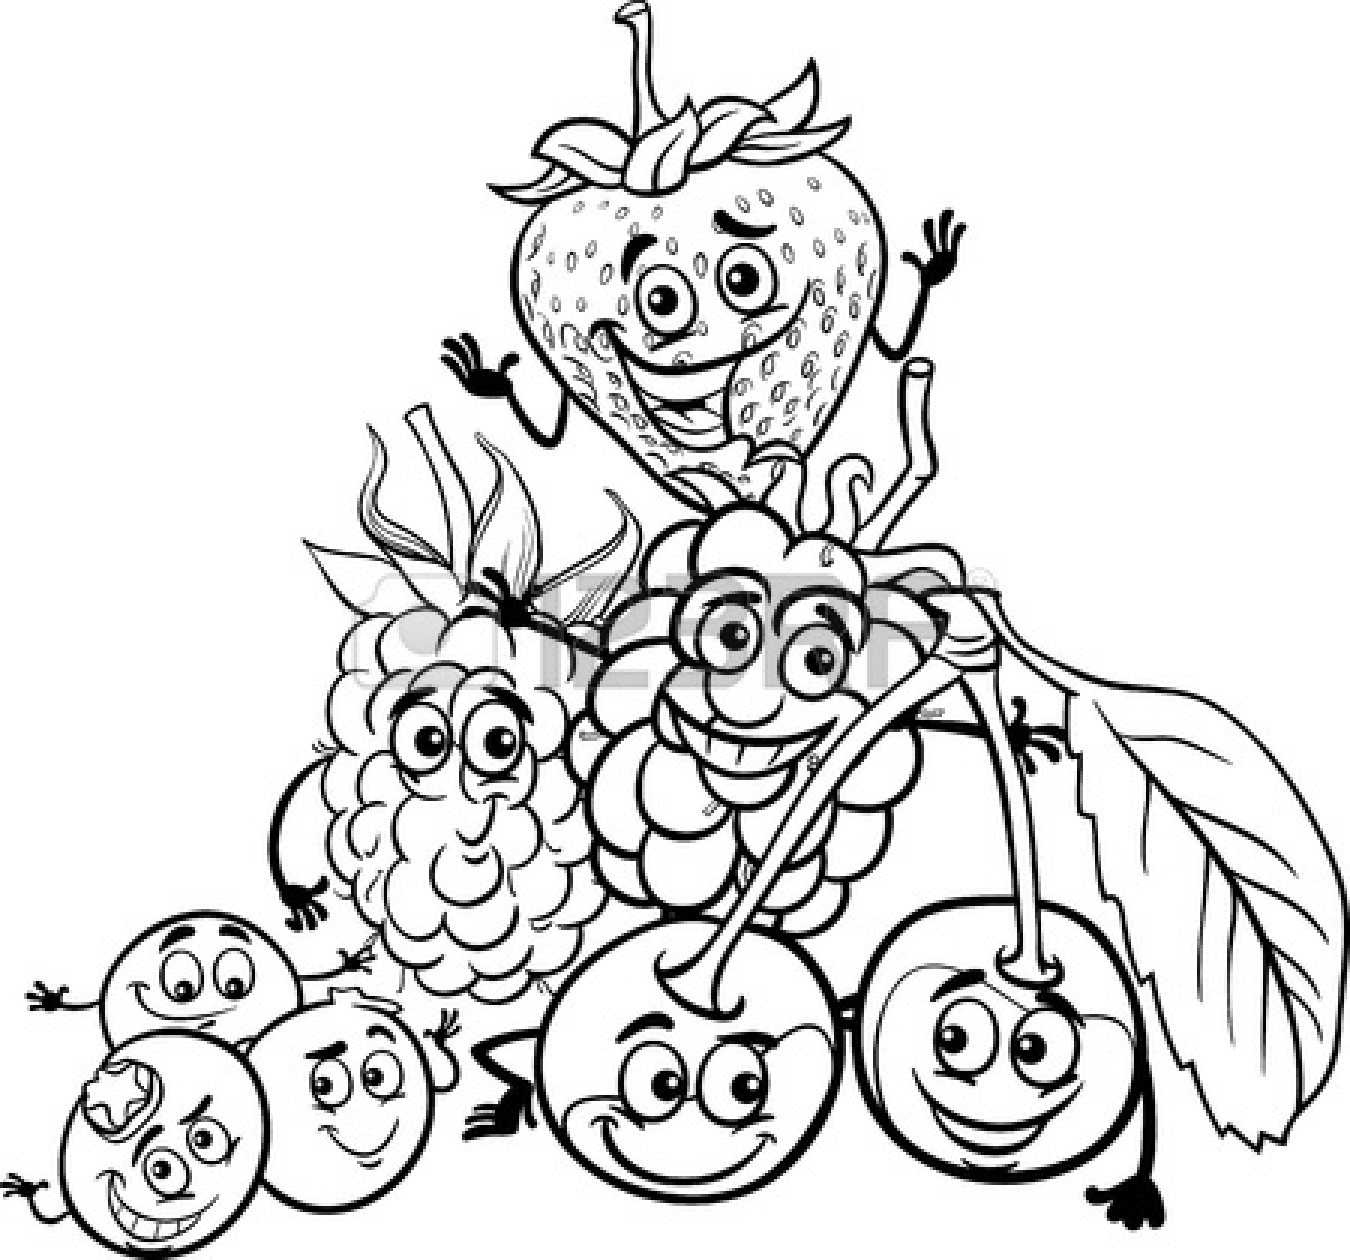 Free fruits in bag clipart black and white image free stock Food Clipart Black And White | Free download best Food Clipart Black ... image free stock